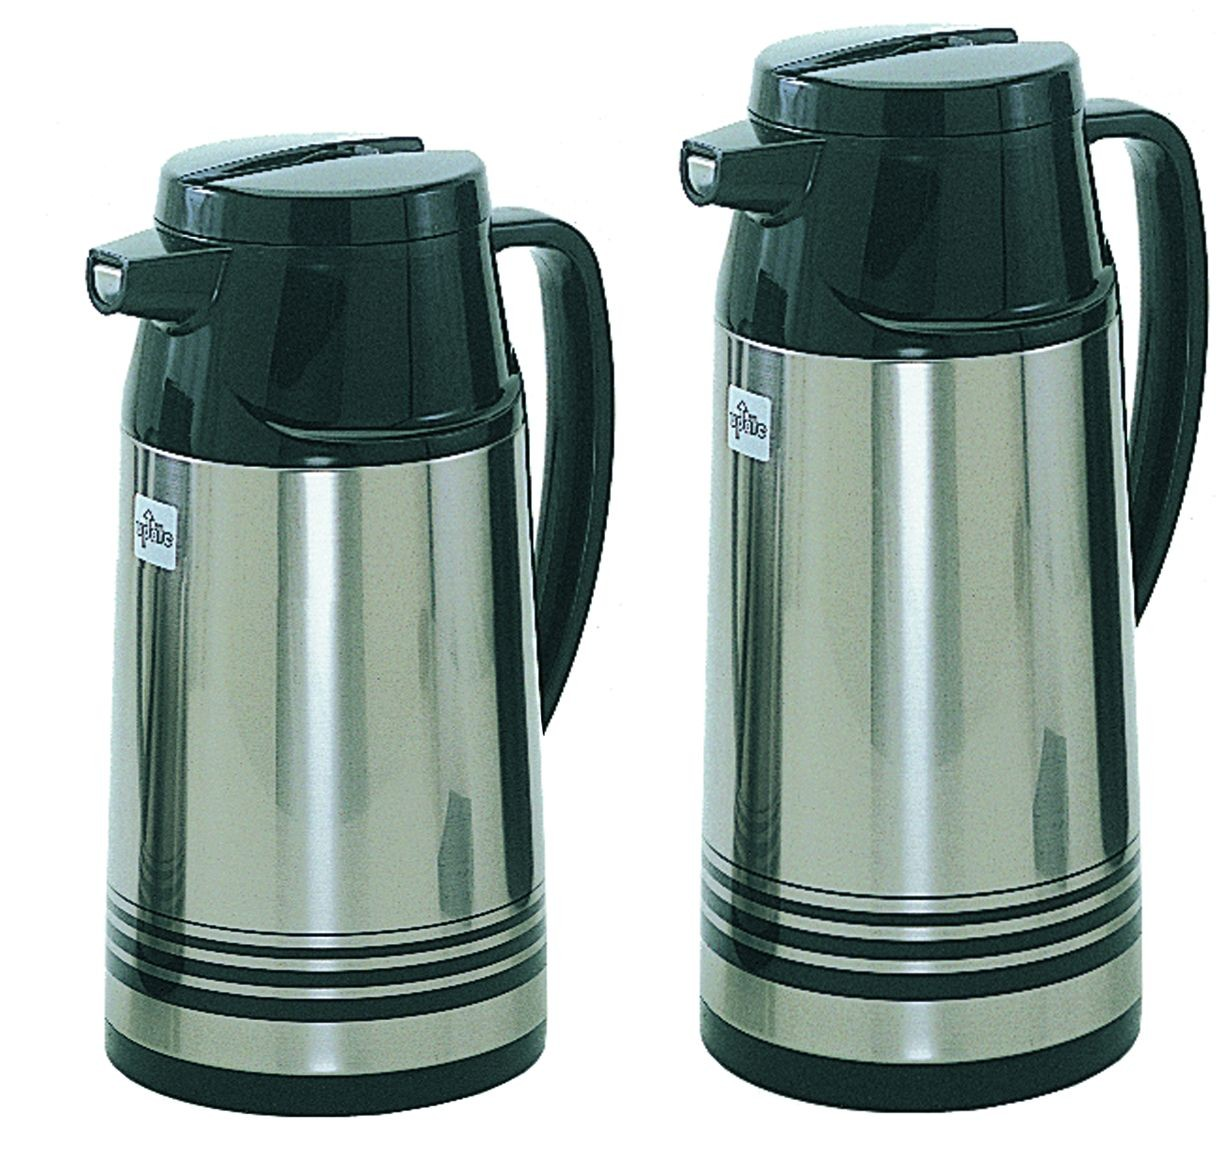 Update International AIS-100-SF Vacuum Insulated Click Pour Carafe 33 Oz.